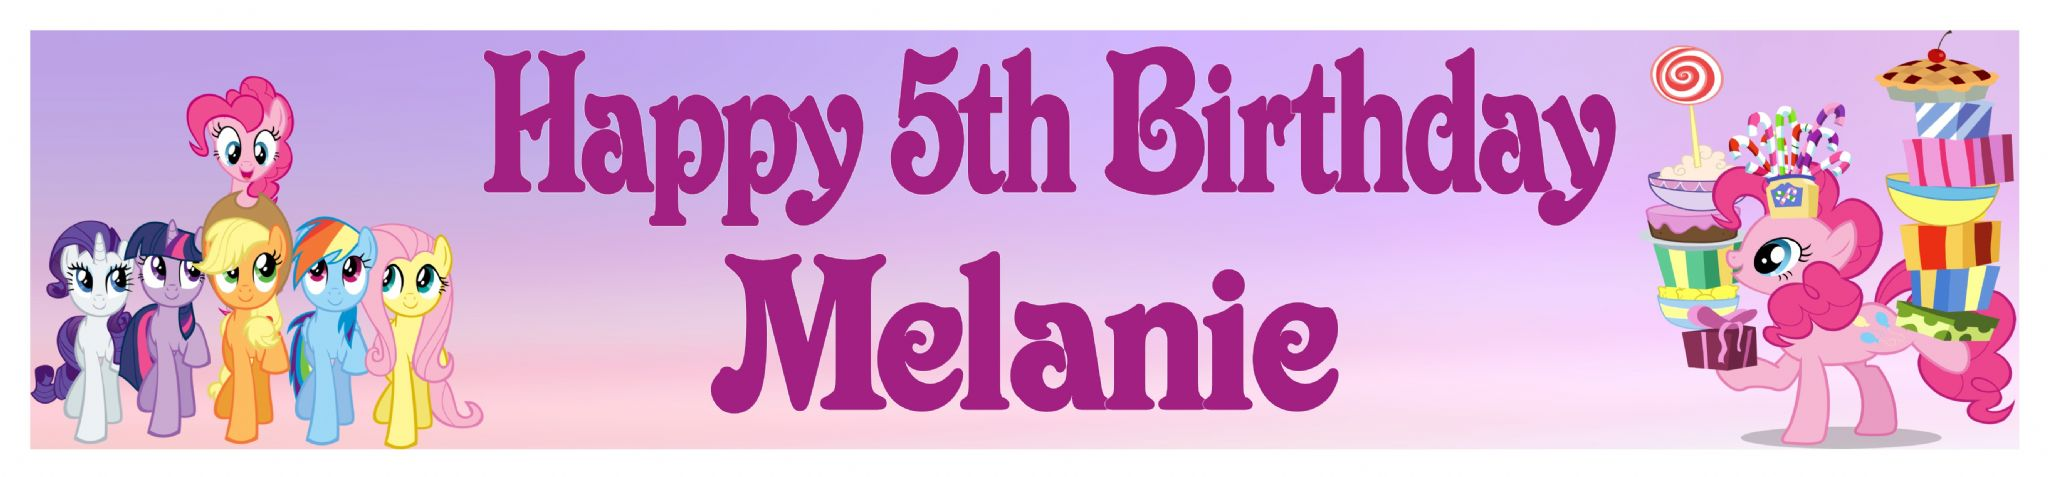 my little pony happy birthday banner ; personalised-my-little-pony-banner-3165-p